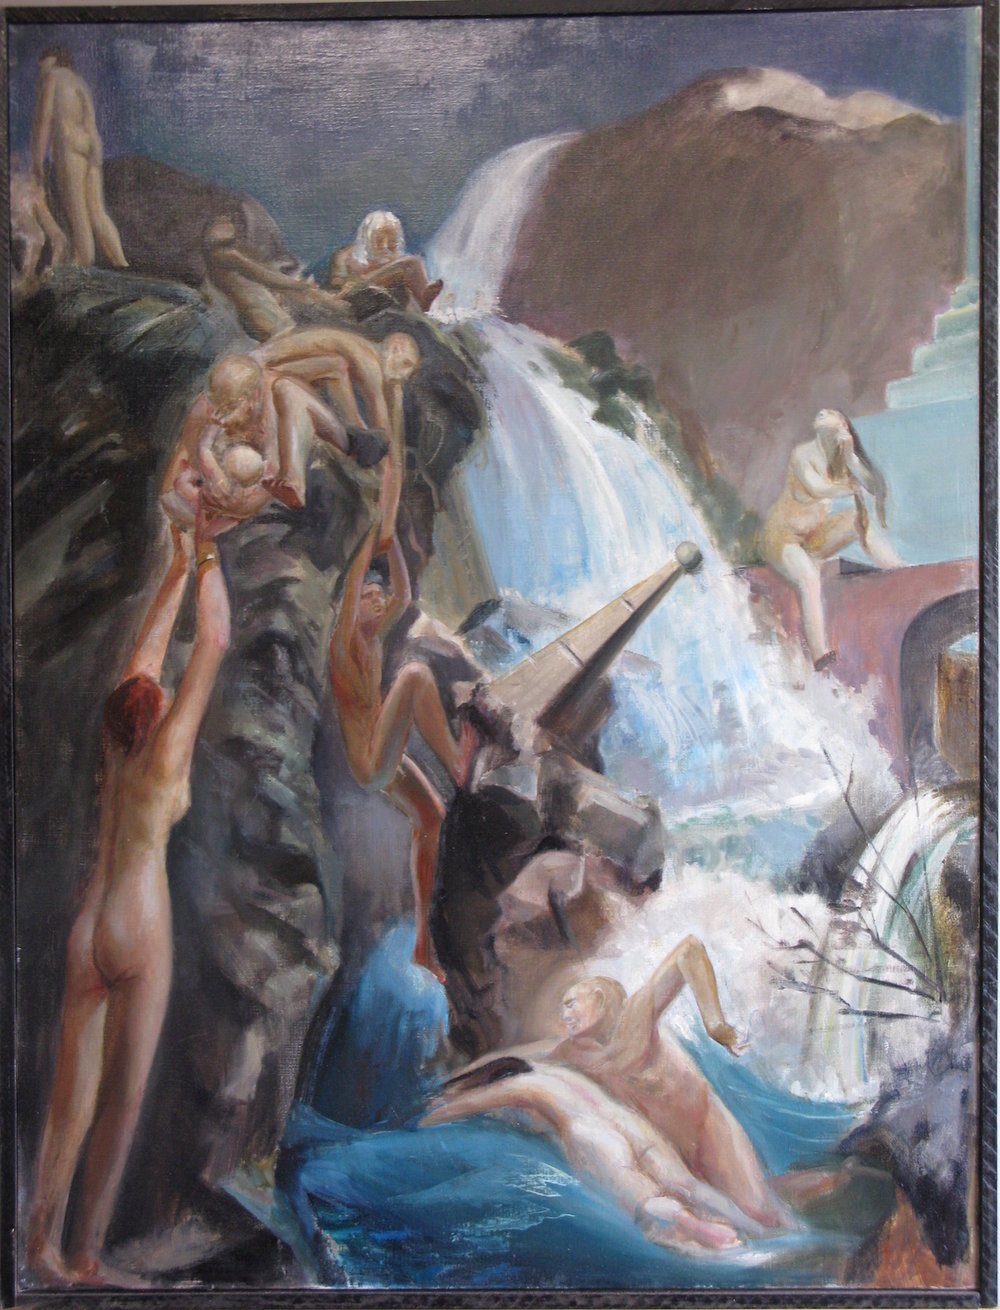 Bathers of Saturnia, 40 x 30 inches, oil on linen